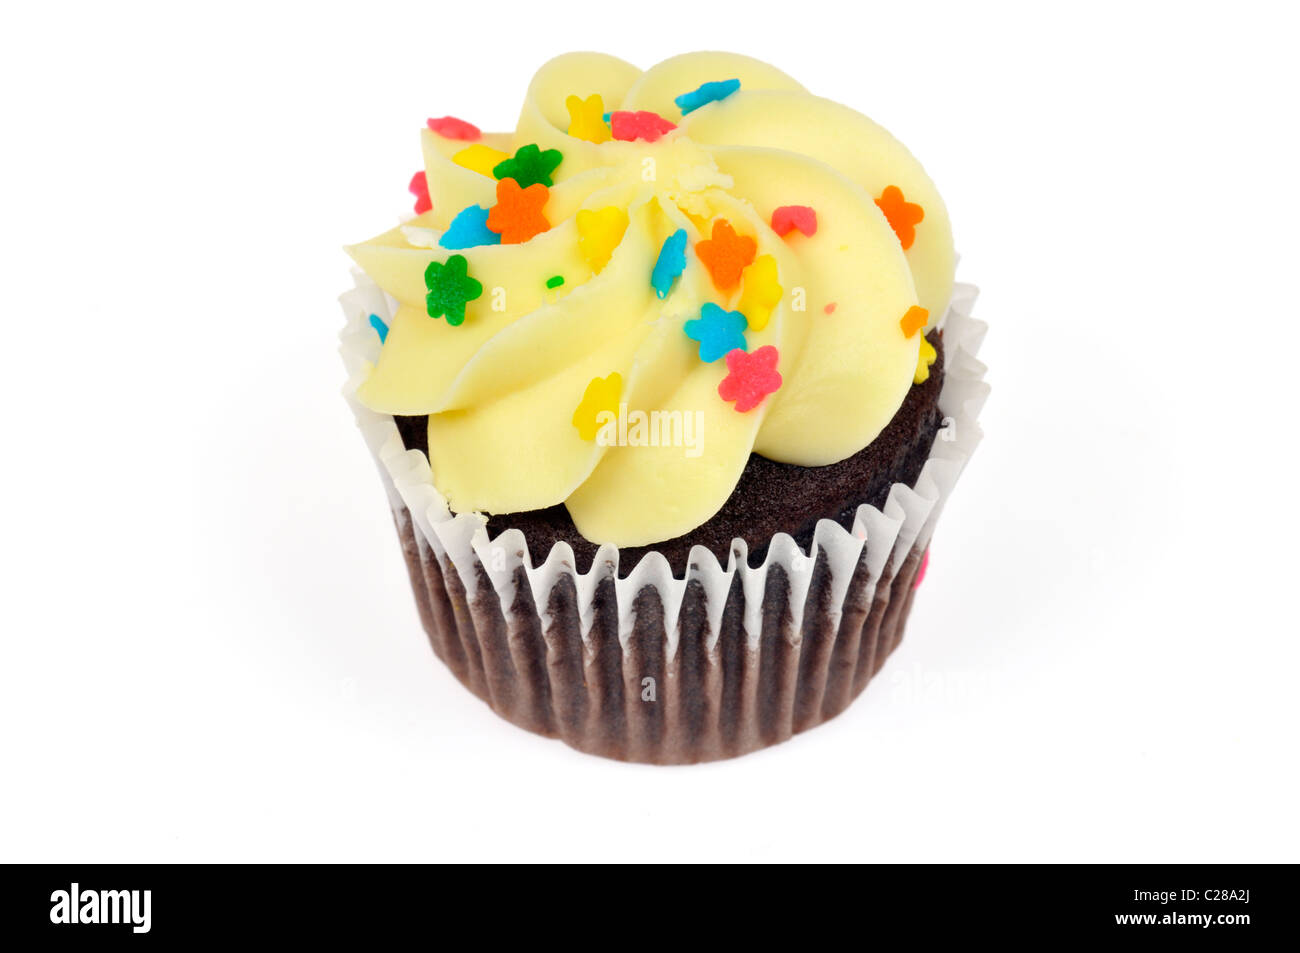 Chocolate cupcake decorated with yellow lemon icing and colorful sprinkles on white background cut out - Stock Image